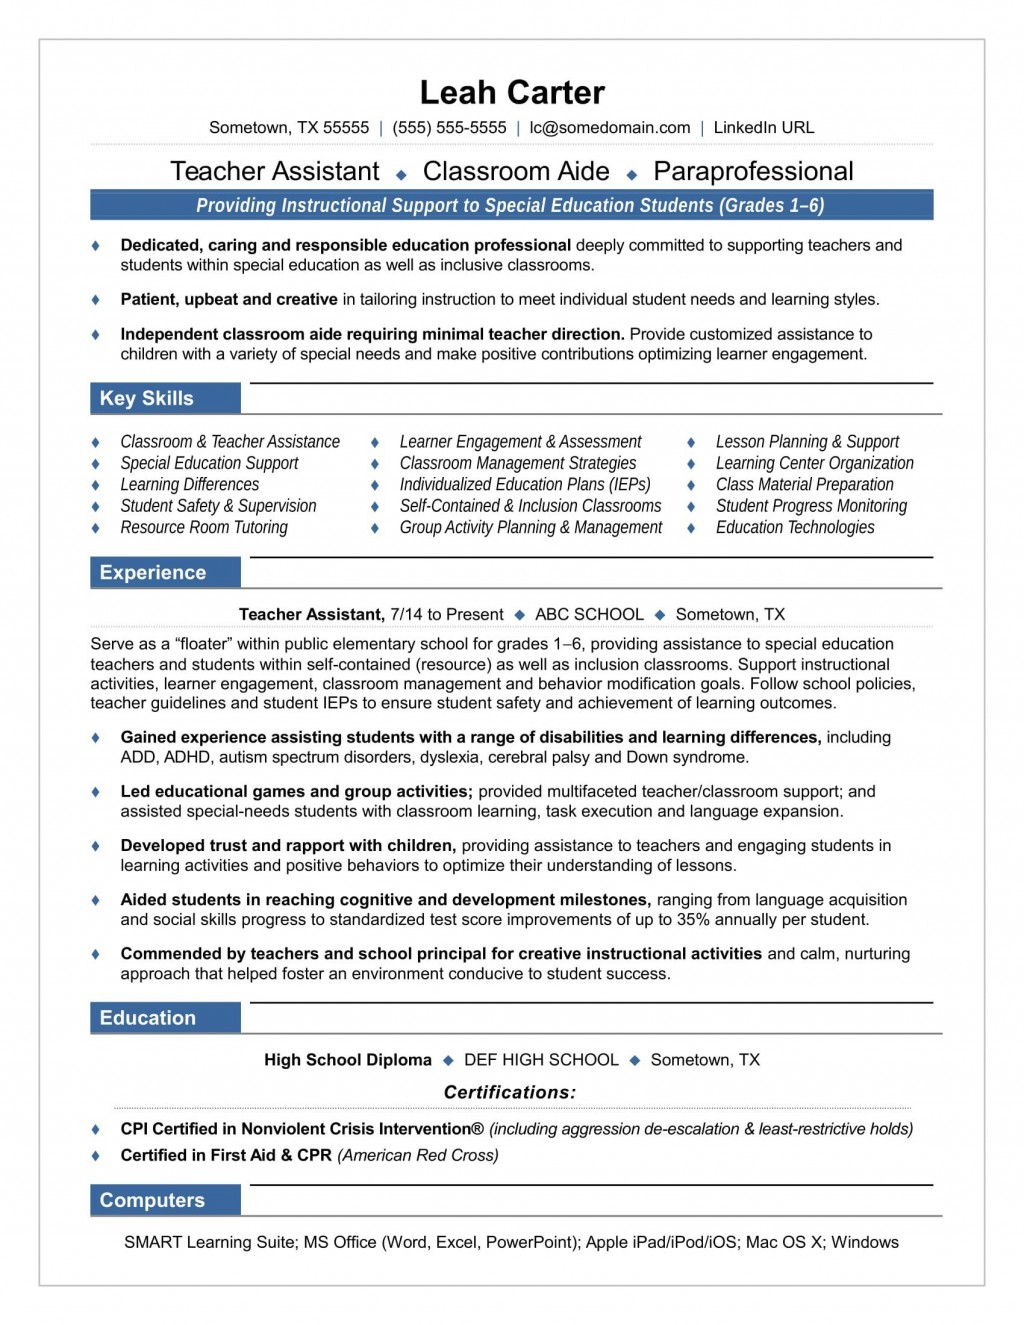 008 Unusual Good Resume For Teaching Job Sample  With Experience Pdf Fresher In IndiaLarge